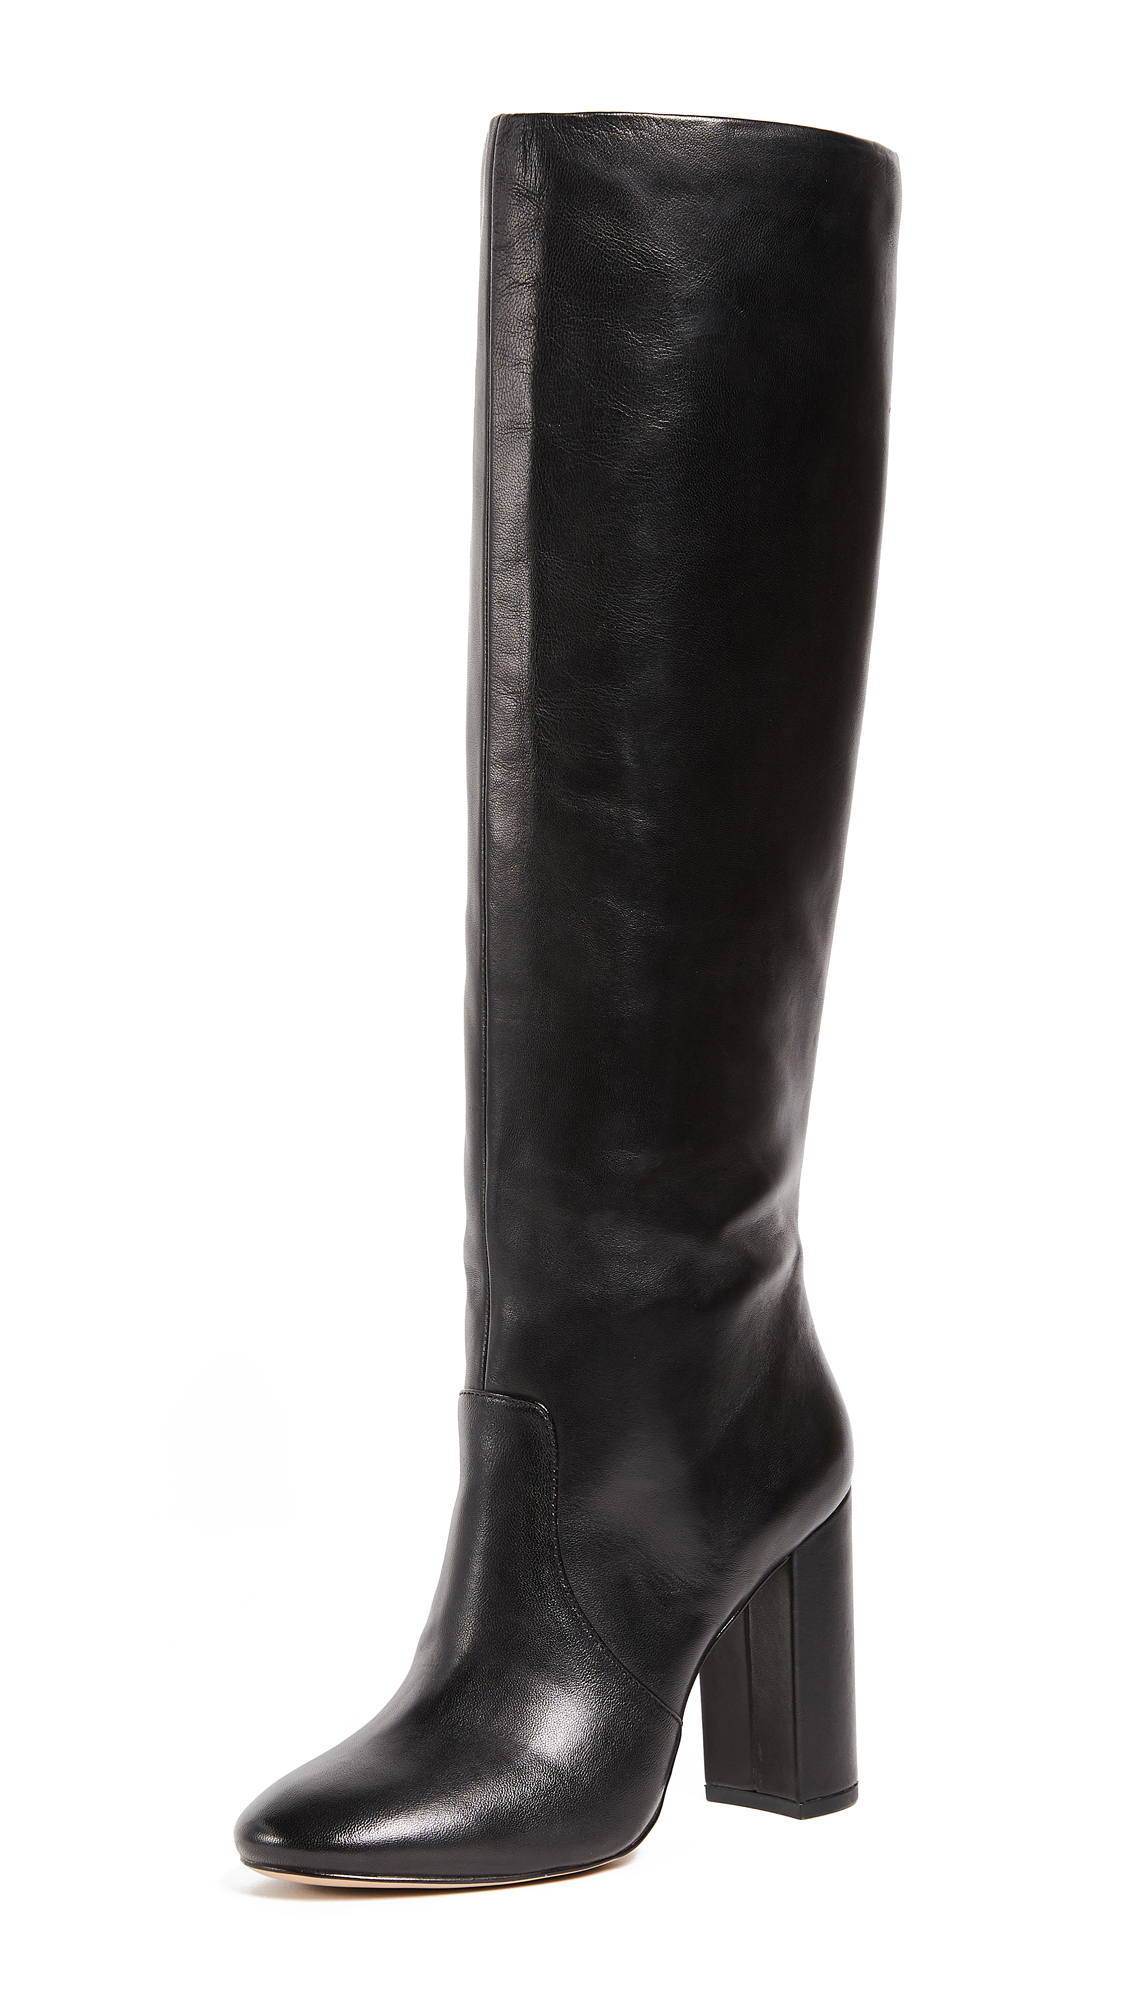 Botkier Roslin Knee High Boots - Black